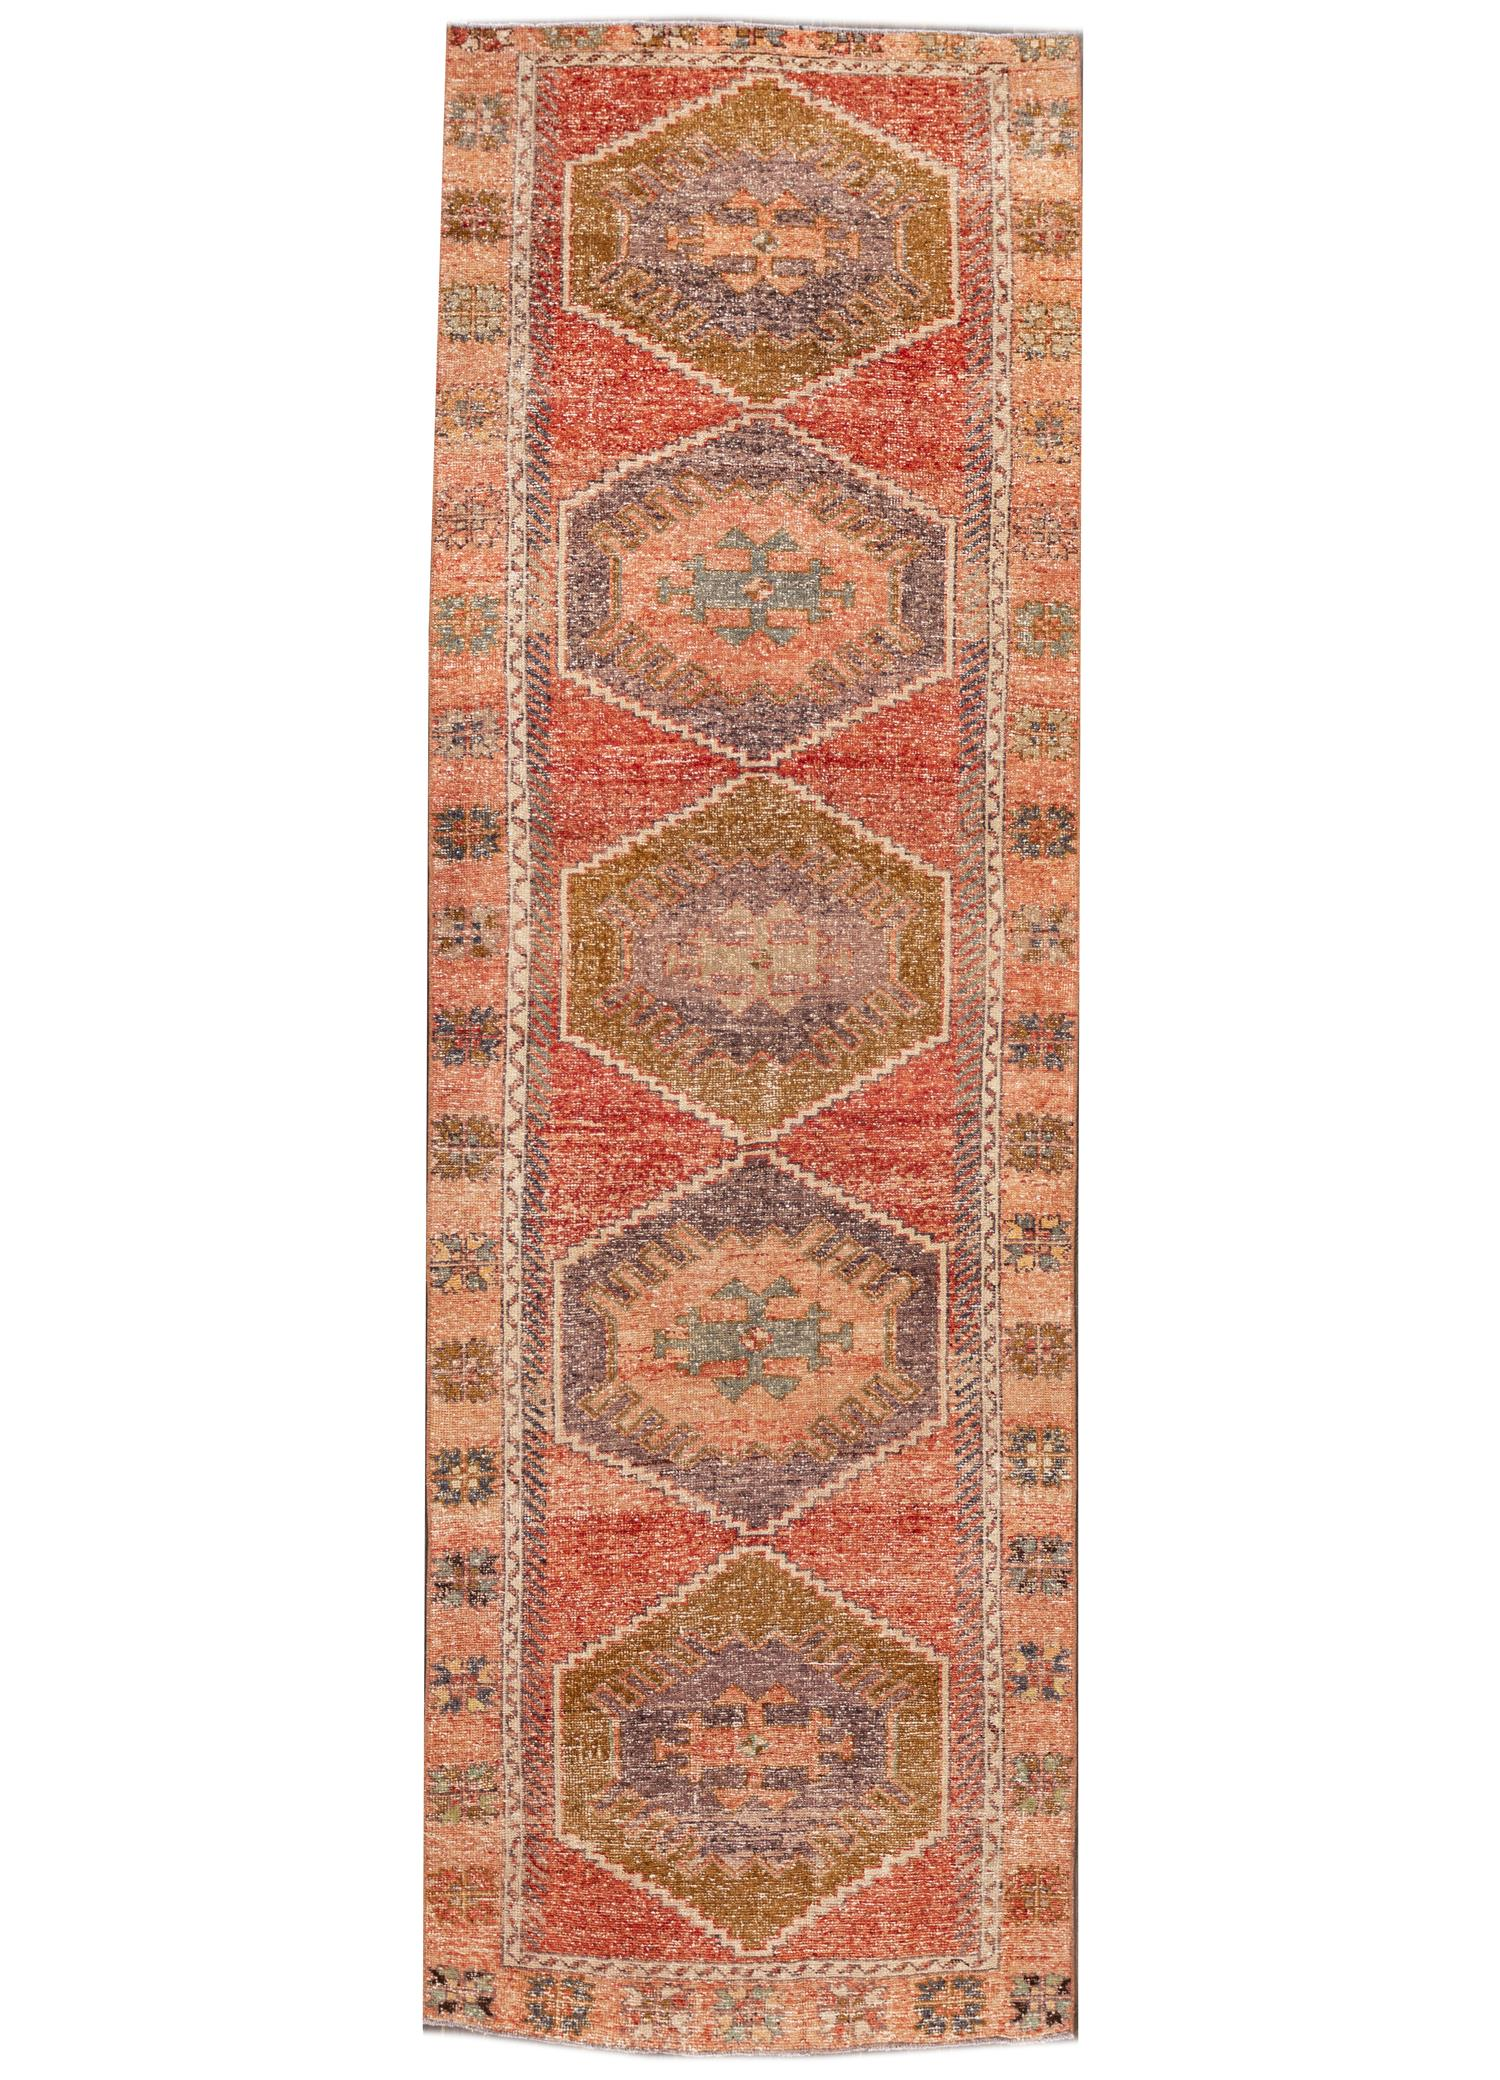 Vintage Turkish Anatolian Runner Rug, 4X12